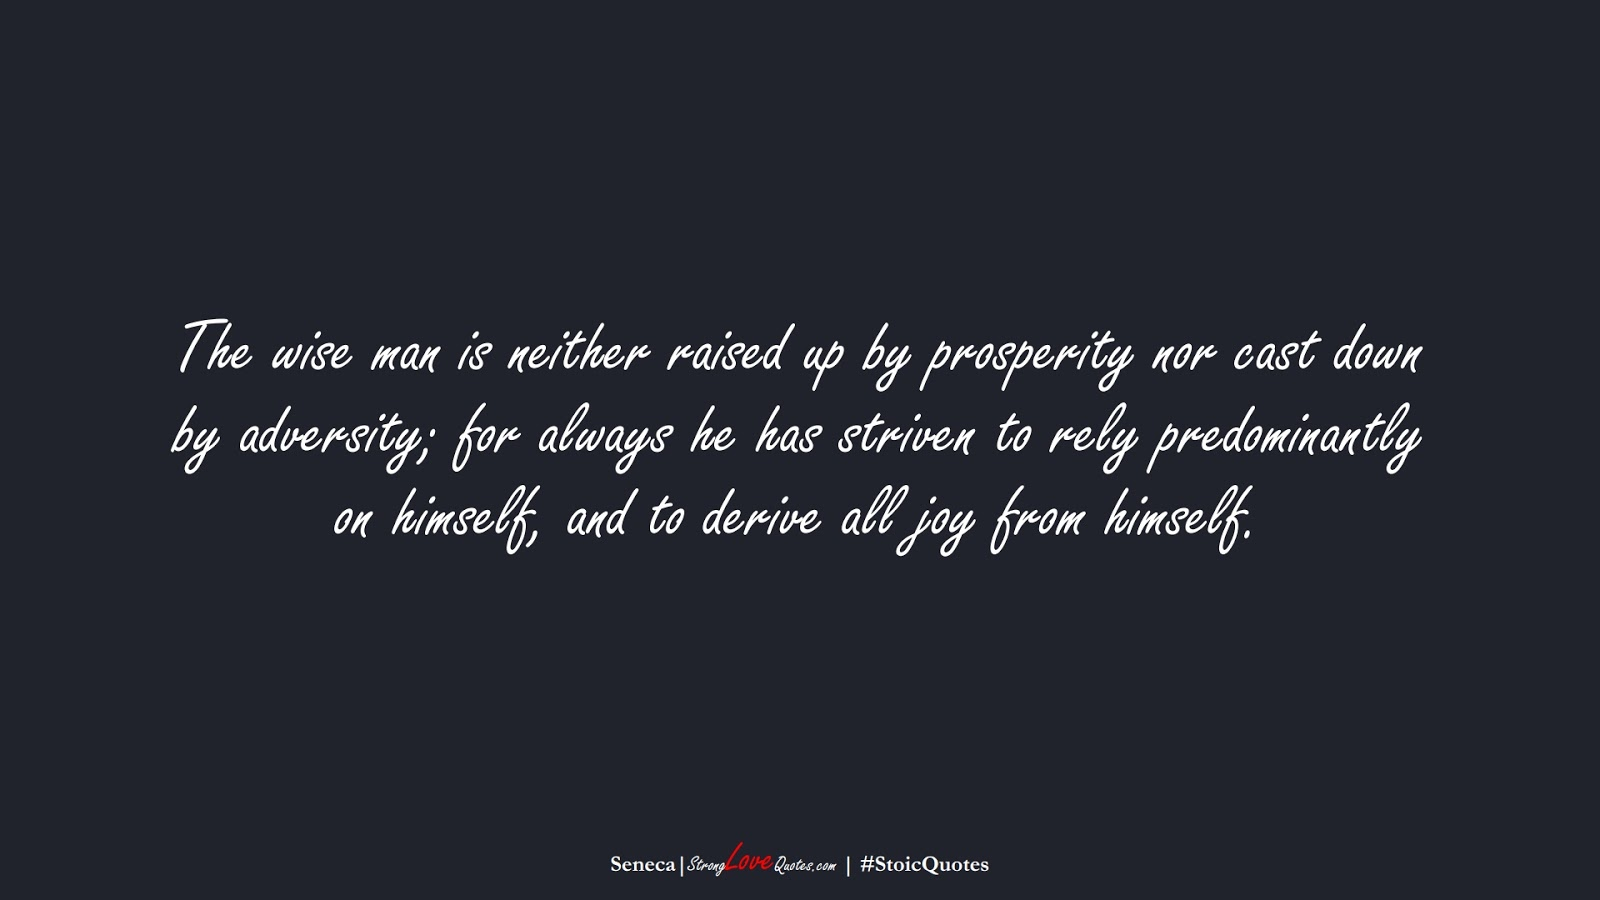 The wise man is neither raised up by prosperity nor cast down by adversity; for always he has striven to rely predominantly on himself, and to derive all joy from himself. (Seneca);  #StoicQuotes